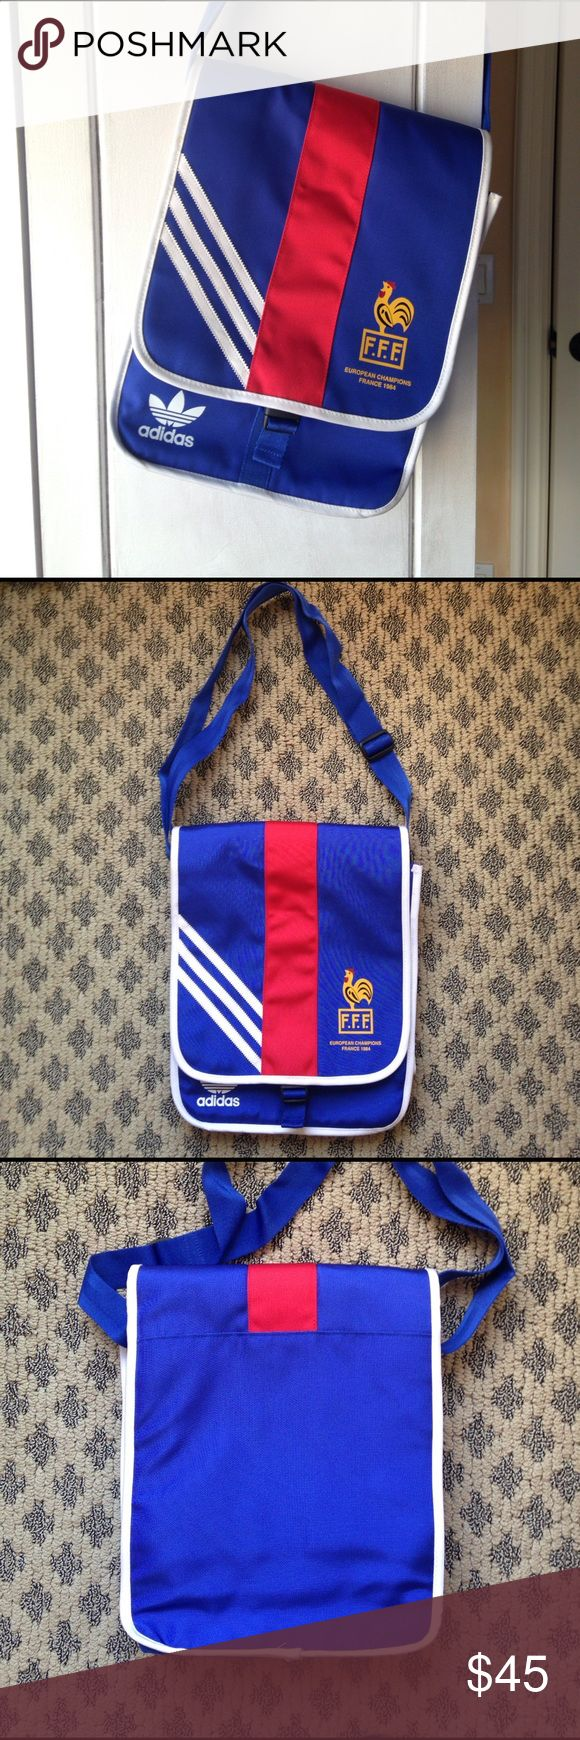 ⚽️ADIDAS EUROPEAN CHAMPIONS FRANCE CROSS BODY BAG ADIDAS⚽️ EUROPEAN CHAMPIONS FRANCE CROSS BODY BAG. Unique piece! In great condition - has small black mark on inside of the flap (see photo). Can wear over shoulder or cross body. Inside zipper compartment. Also great for kids! Can fit small laptop, magazines, books and iPad inside. Adidas Bags Crossbody Bags